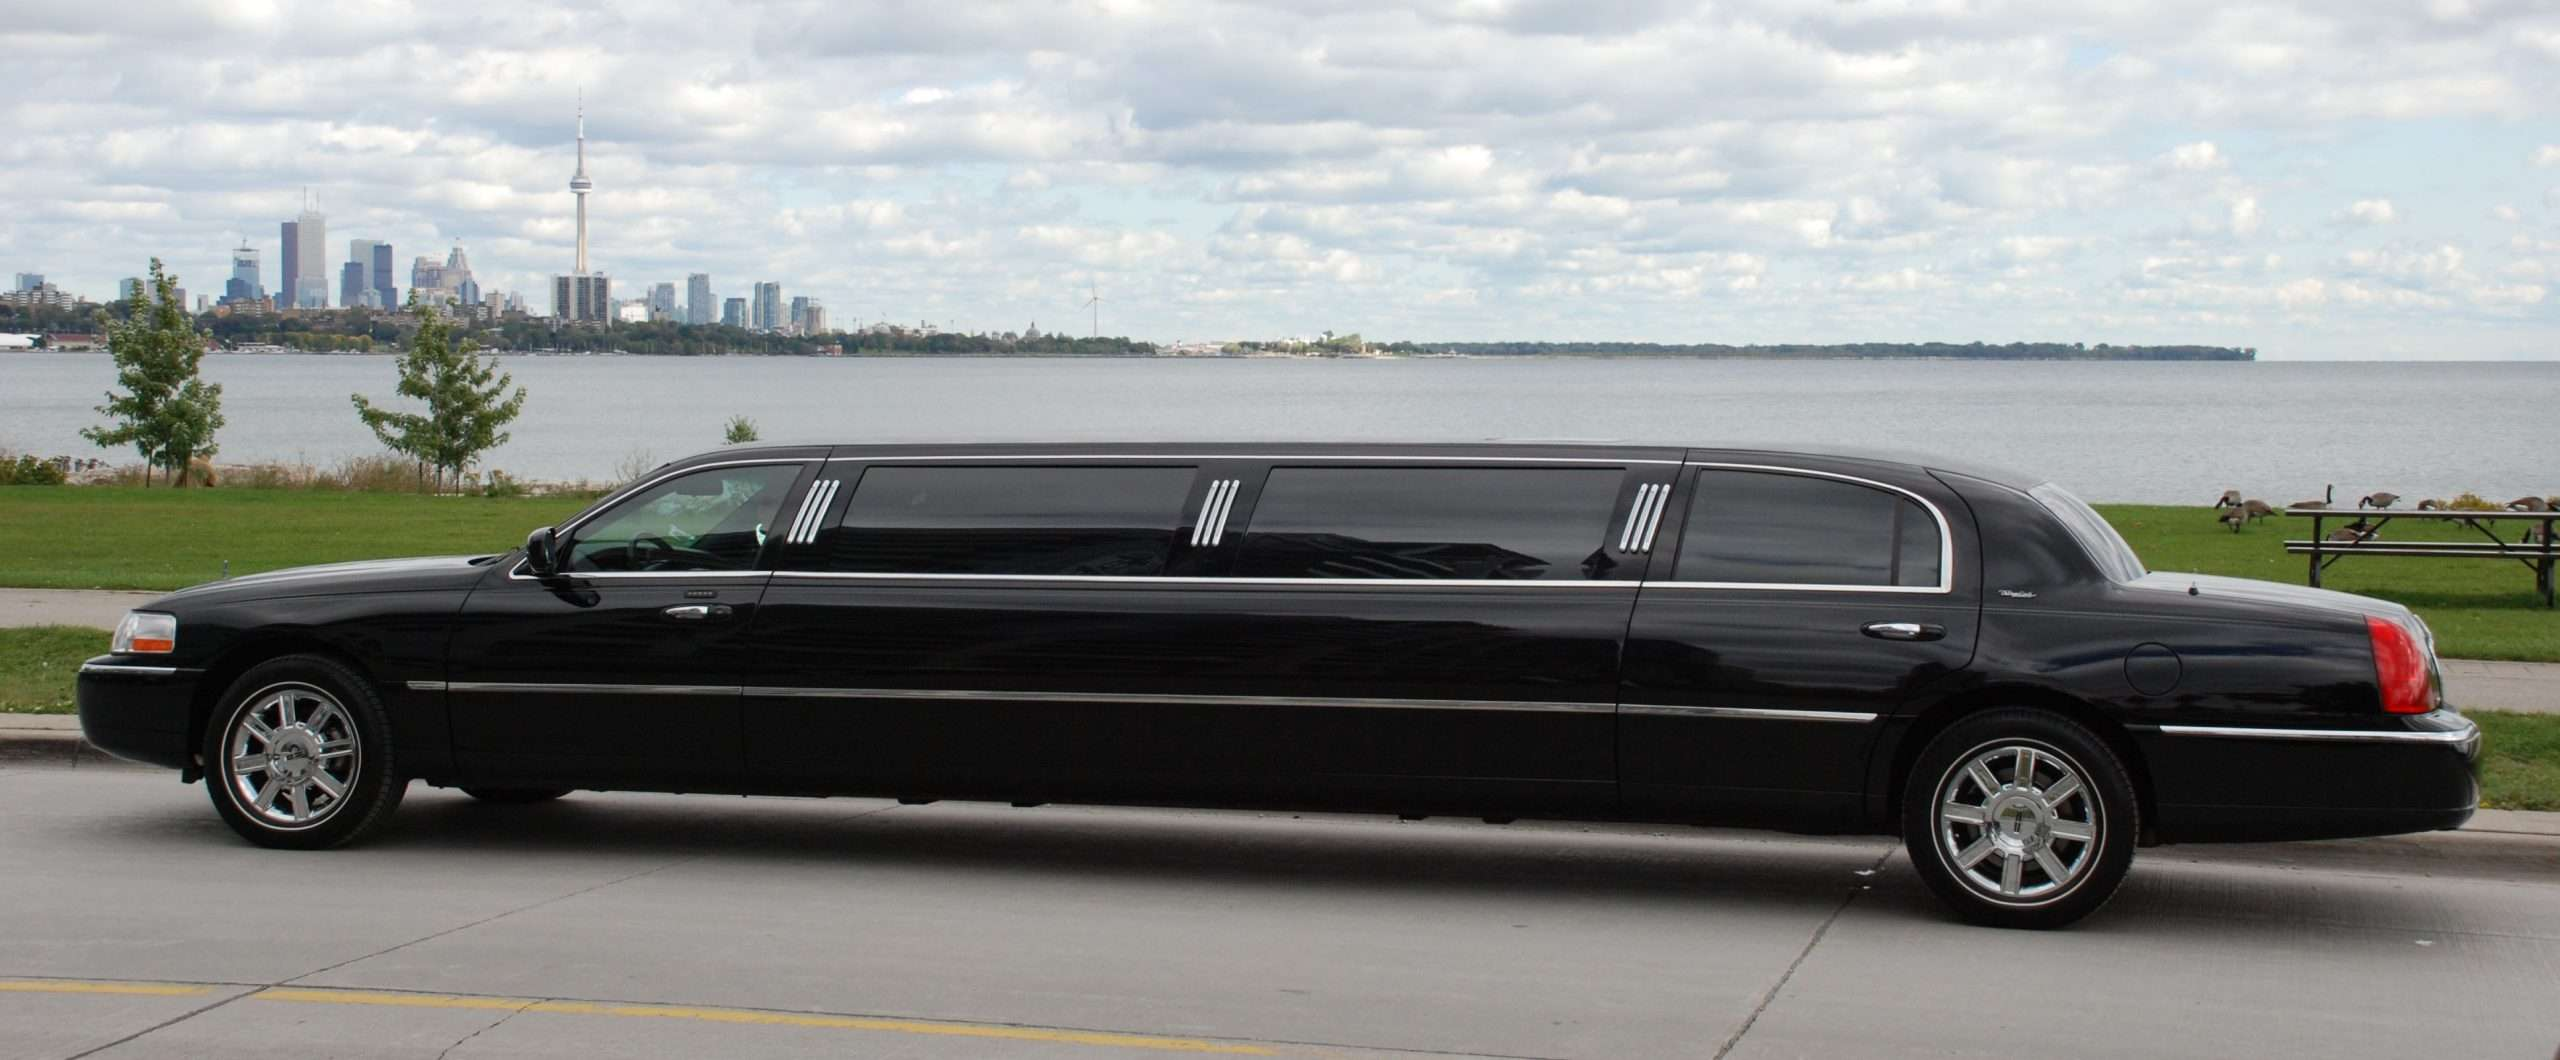 Travel in Style With Luxury Limousine Transfers